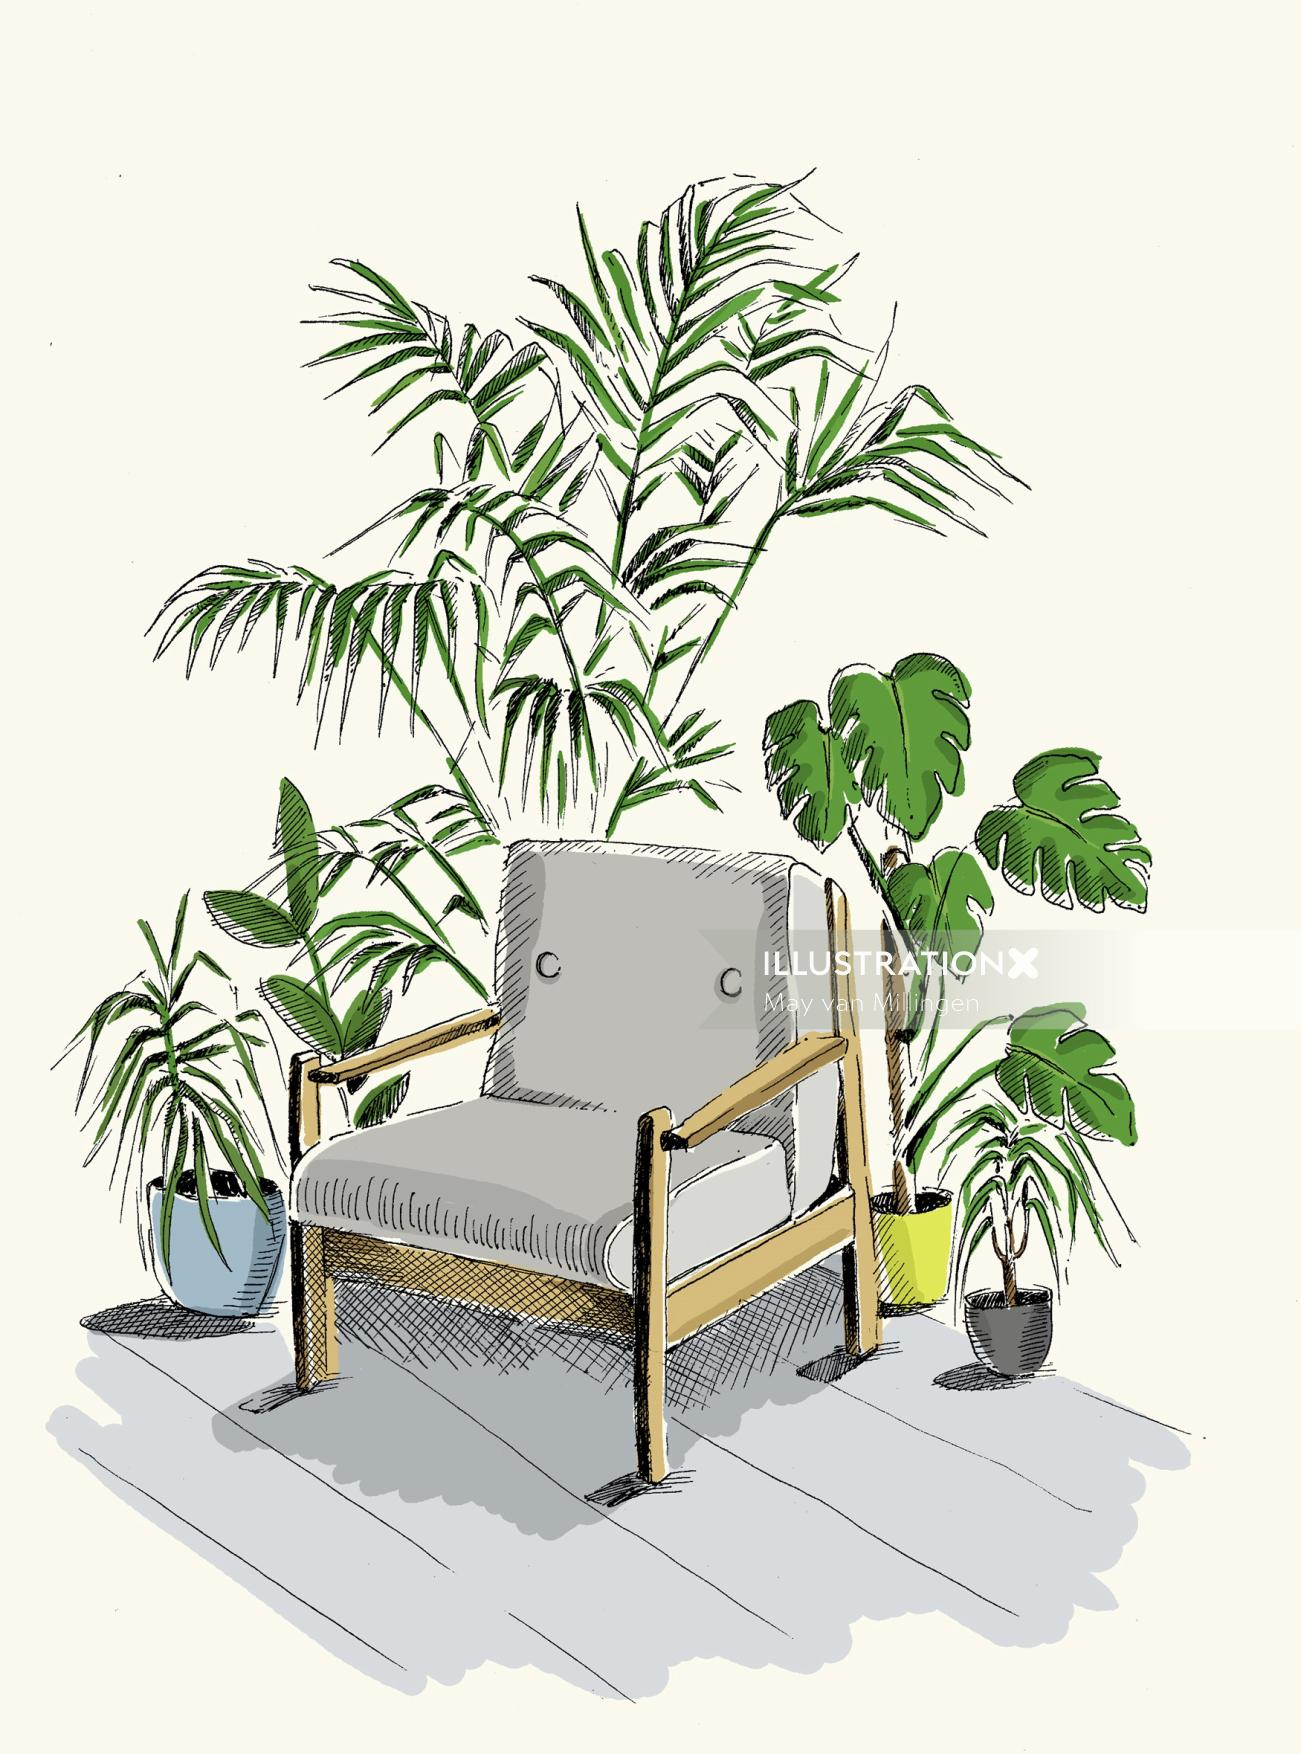 Illustration of plants around the chair